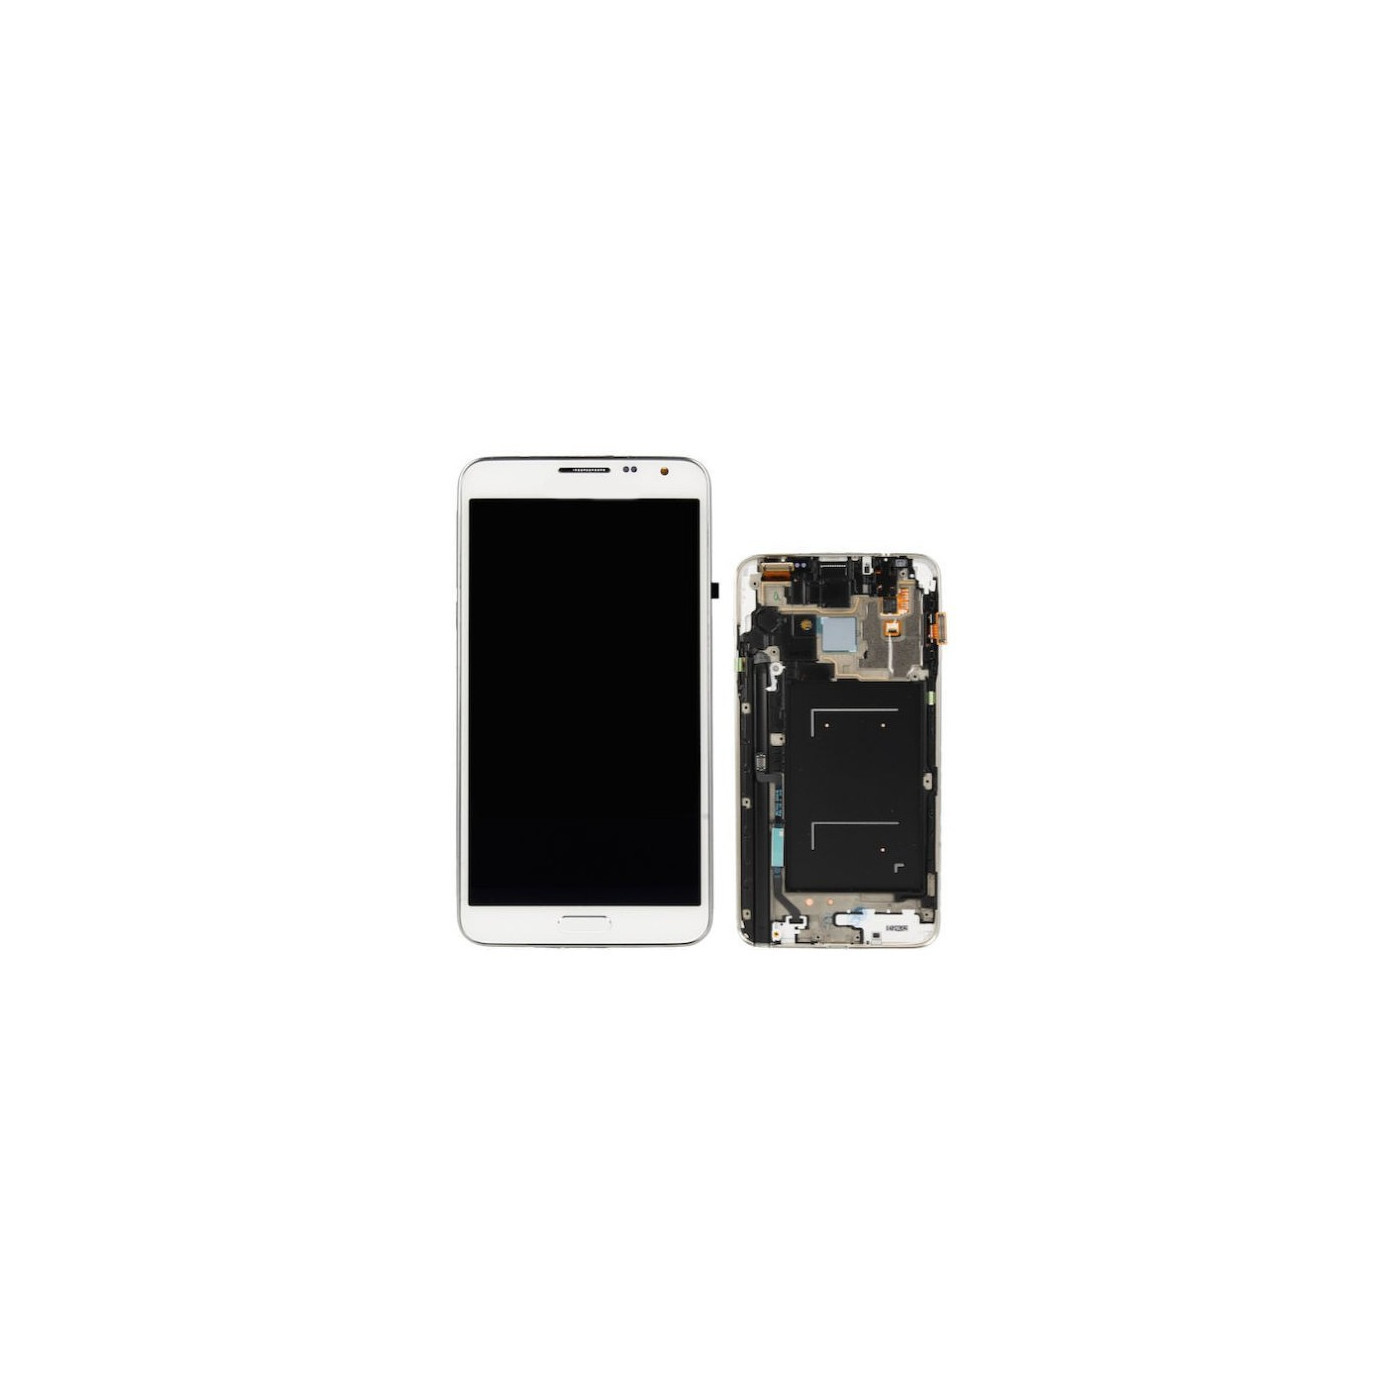 Display lcd touch schermo samsung Note 3 Neo bianco N7505 originale GH97-15540B